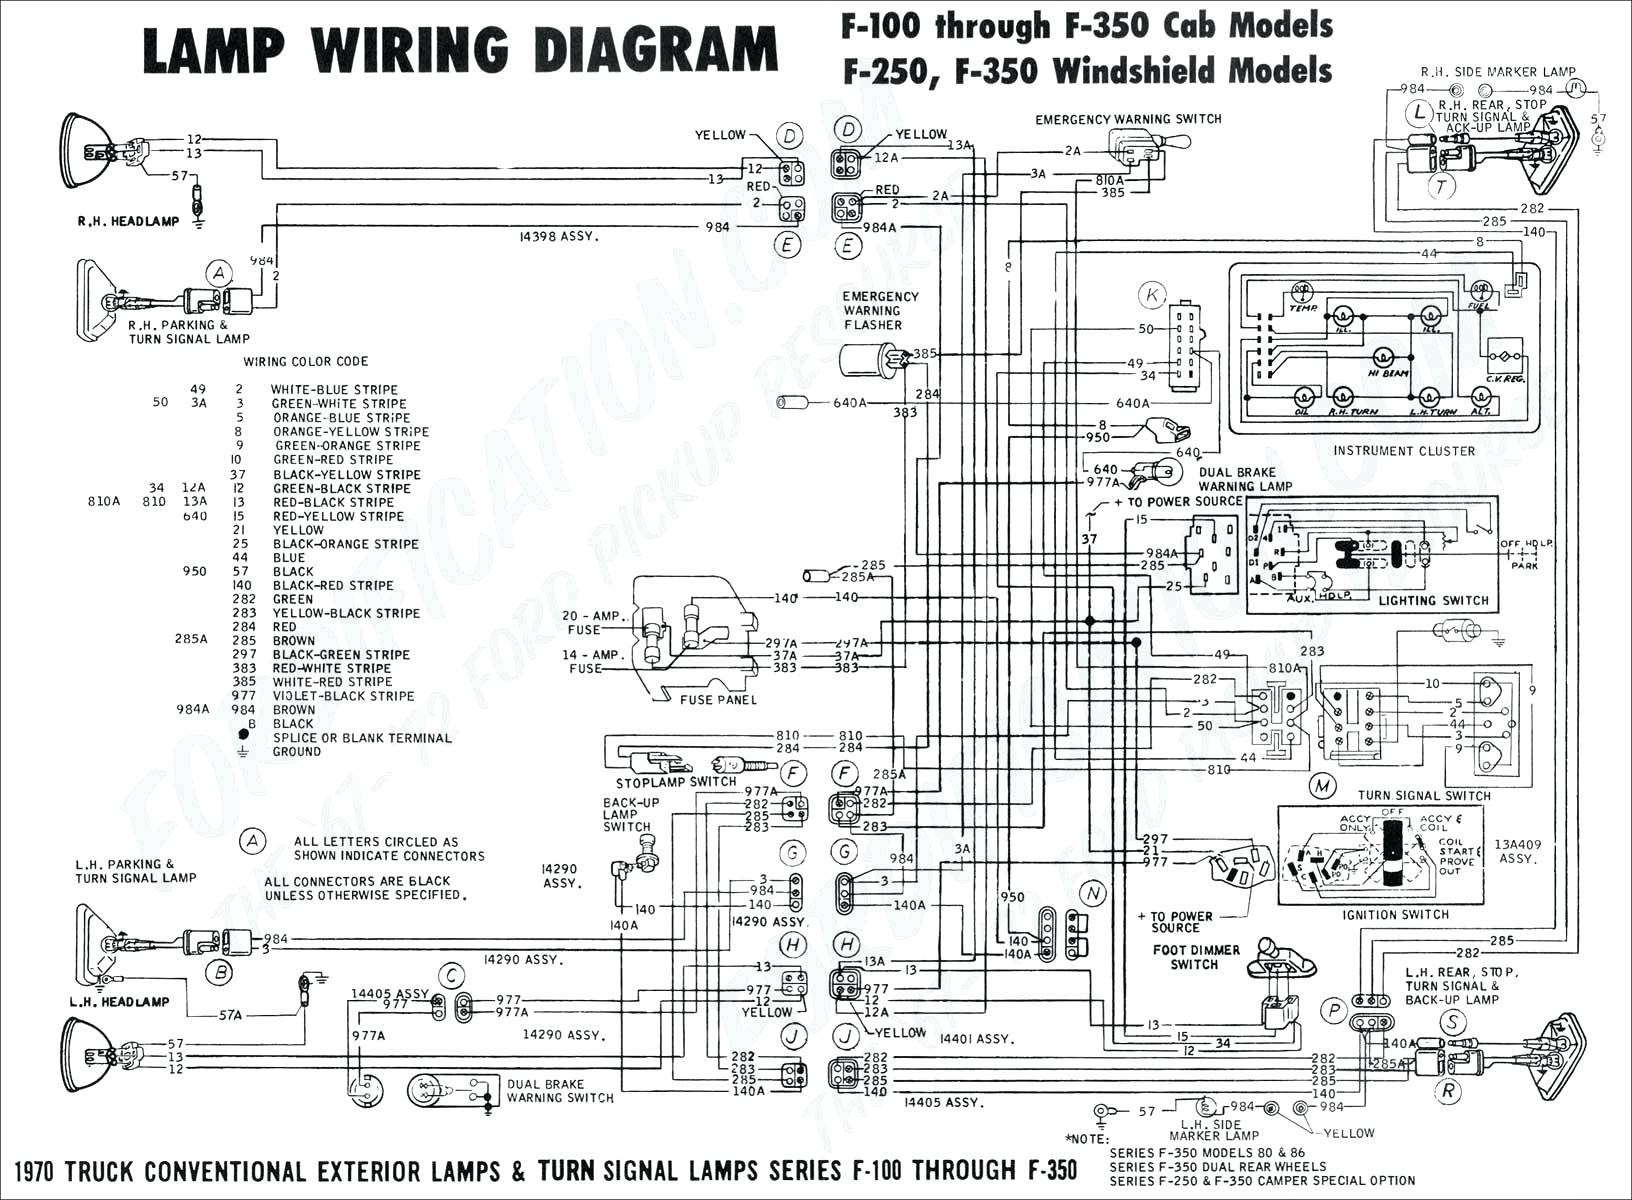 Ford Ranger Engine Diagram Wiring Diagram ford F150 Trailer Lights Truck Best ford Engine Of Ford Ranger Engine Diagram